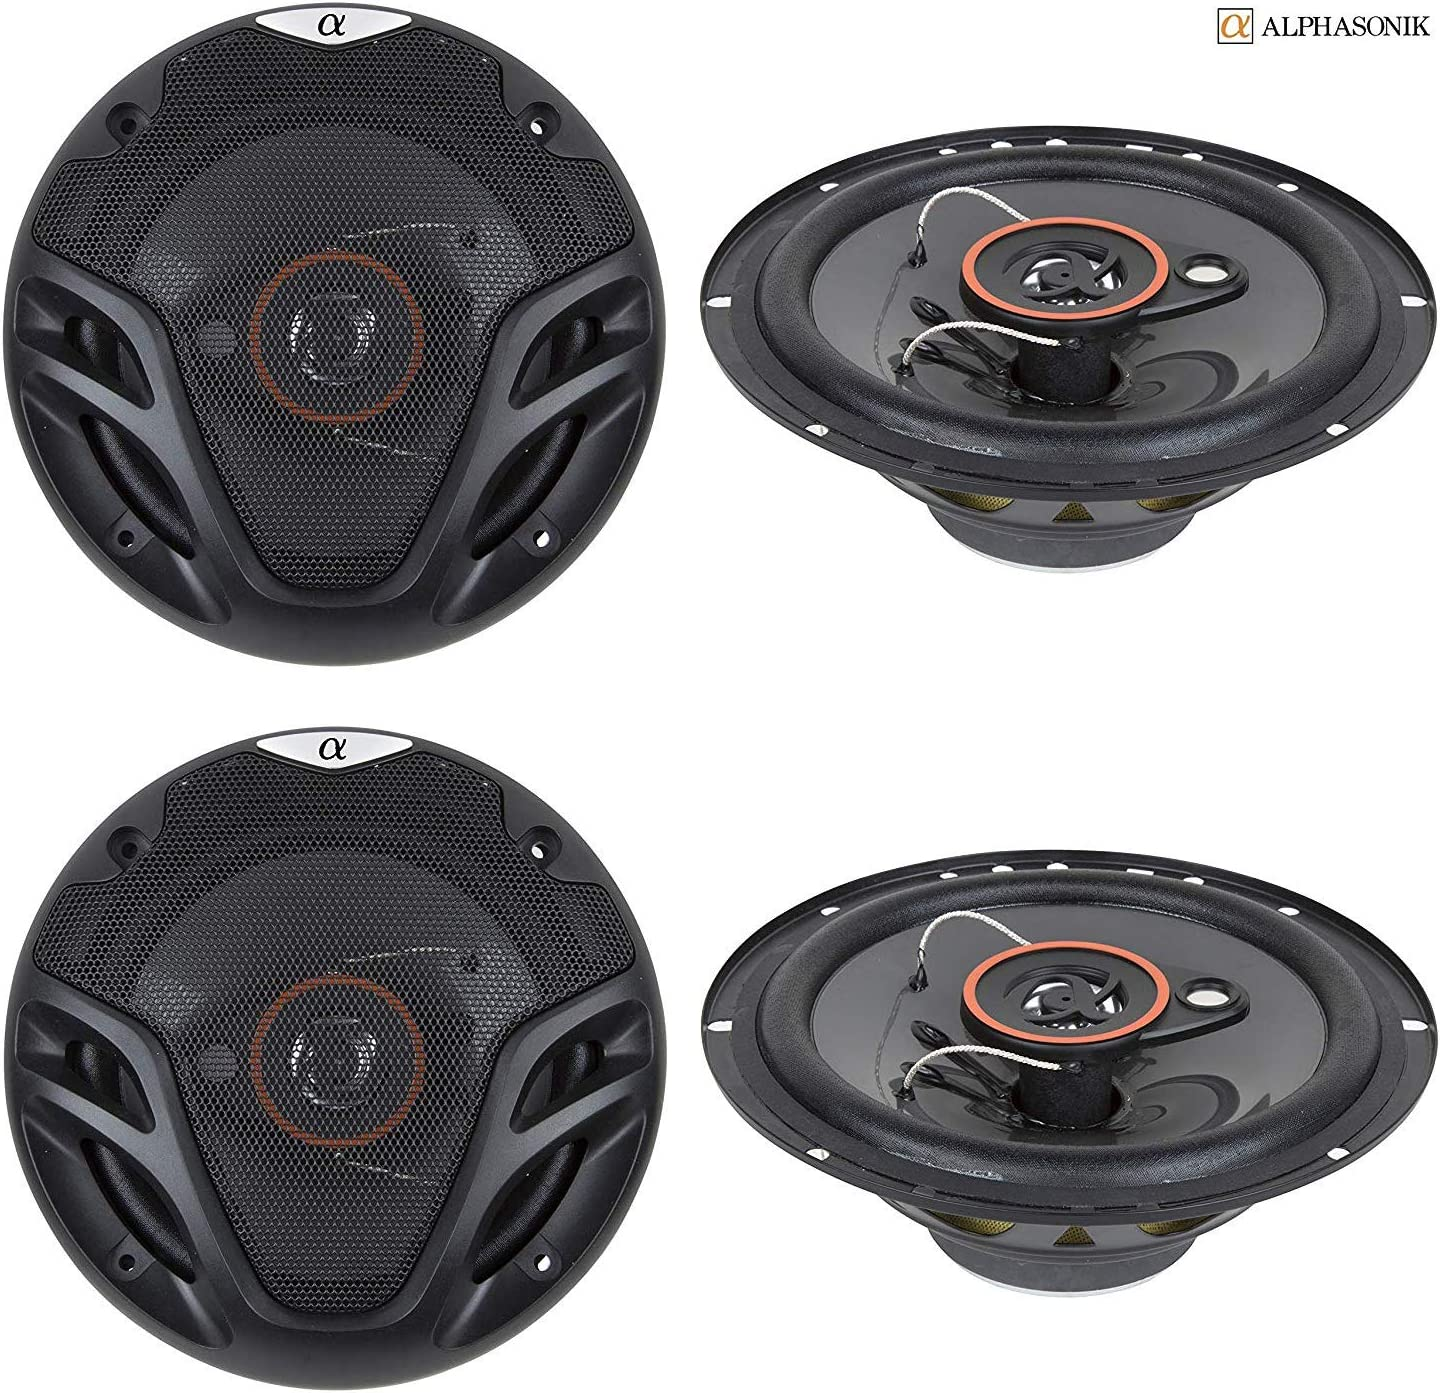 2 Pairs Alphasonik AS26 6.5 inch 350 Watts Max 3-Way Car Audio Full Range Coaxial Speakers with Universal Mounting Holes for Easy Installation and Grills Included 4 New